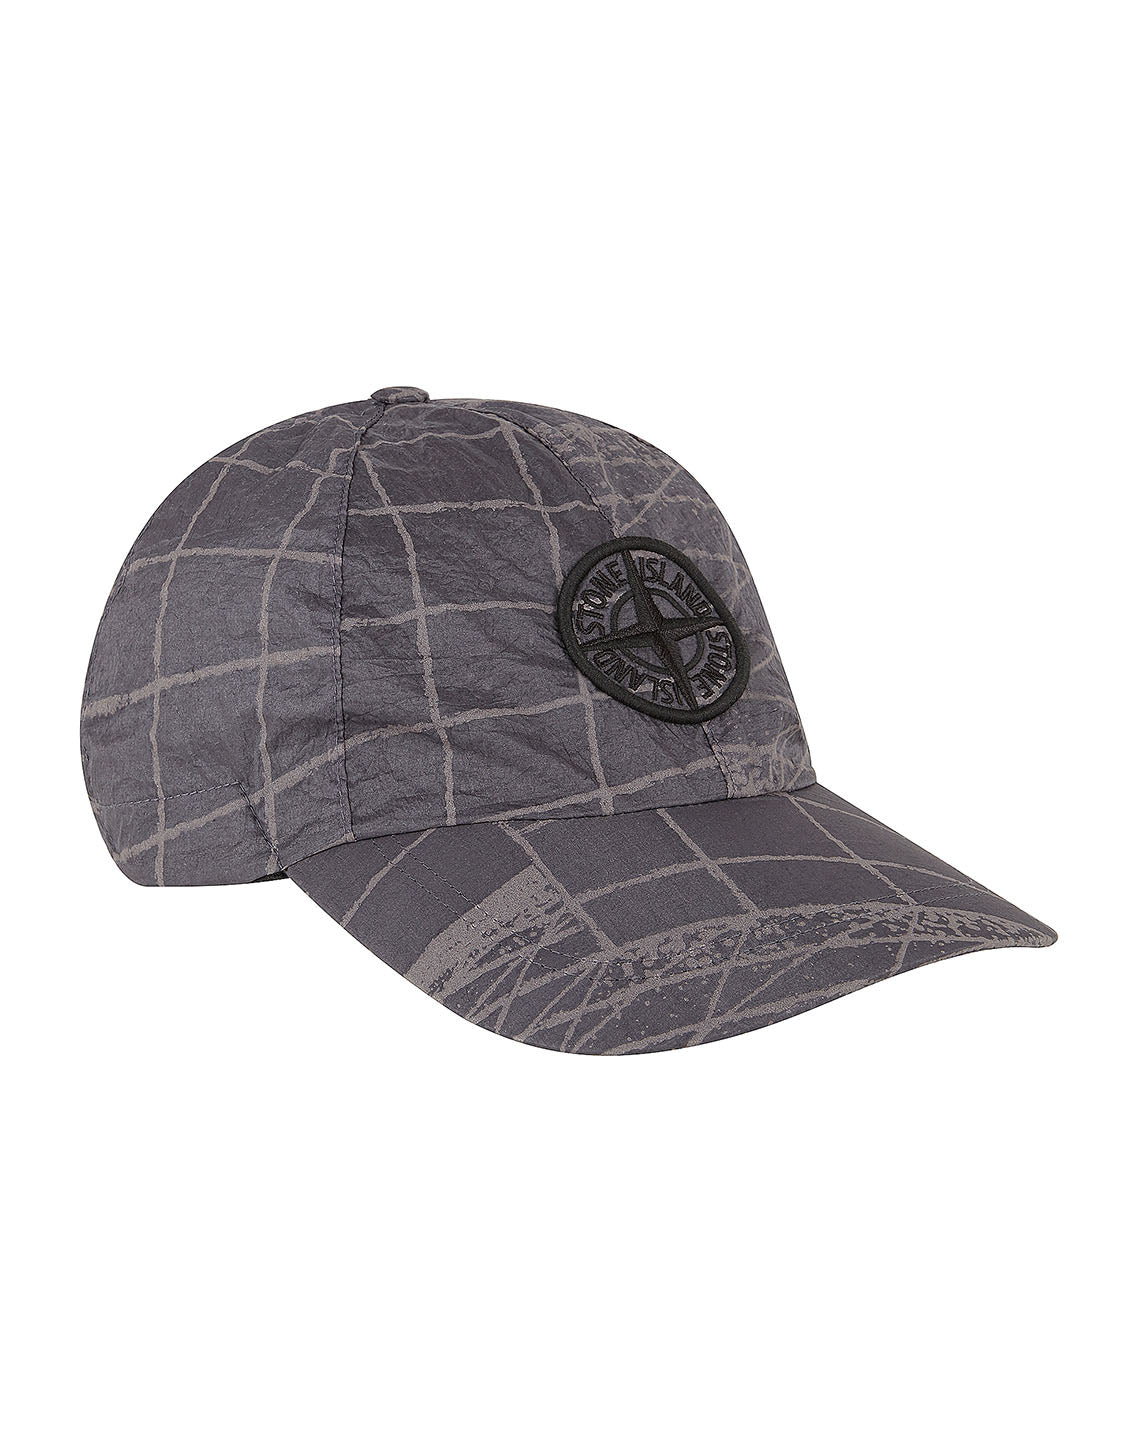 99598 REFLECTIVE GRID ON LAMY Hat in Pewter Grey